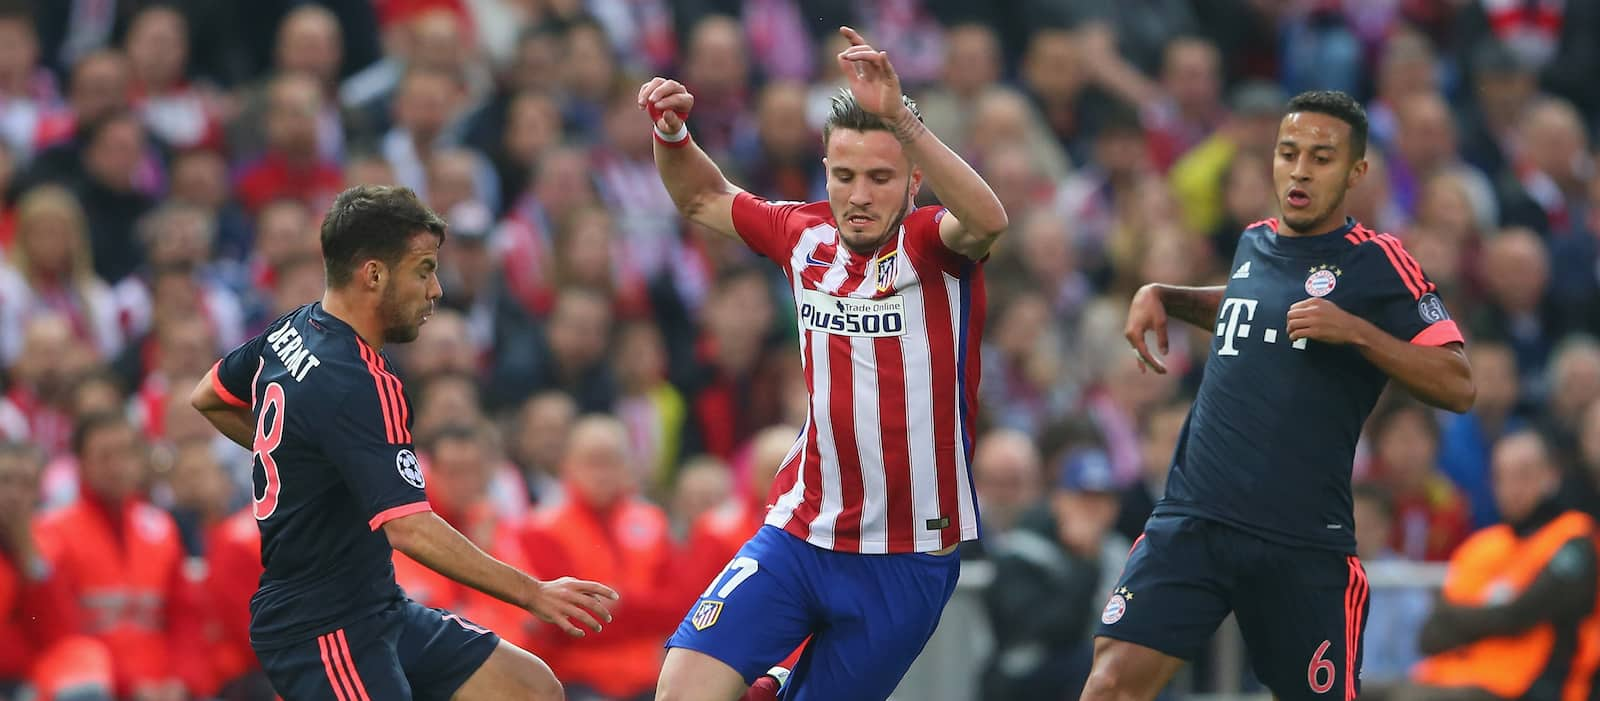 Guillem Balague: Manchester United turned down chance to sign Saul Niguez in 2015